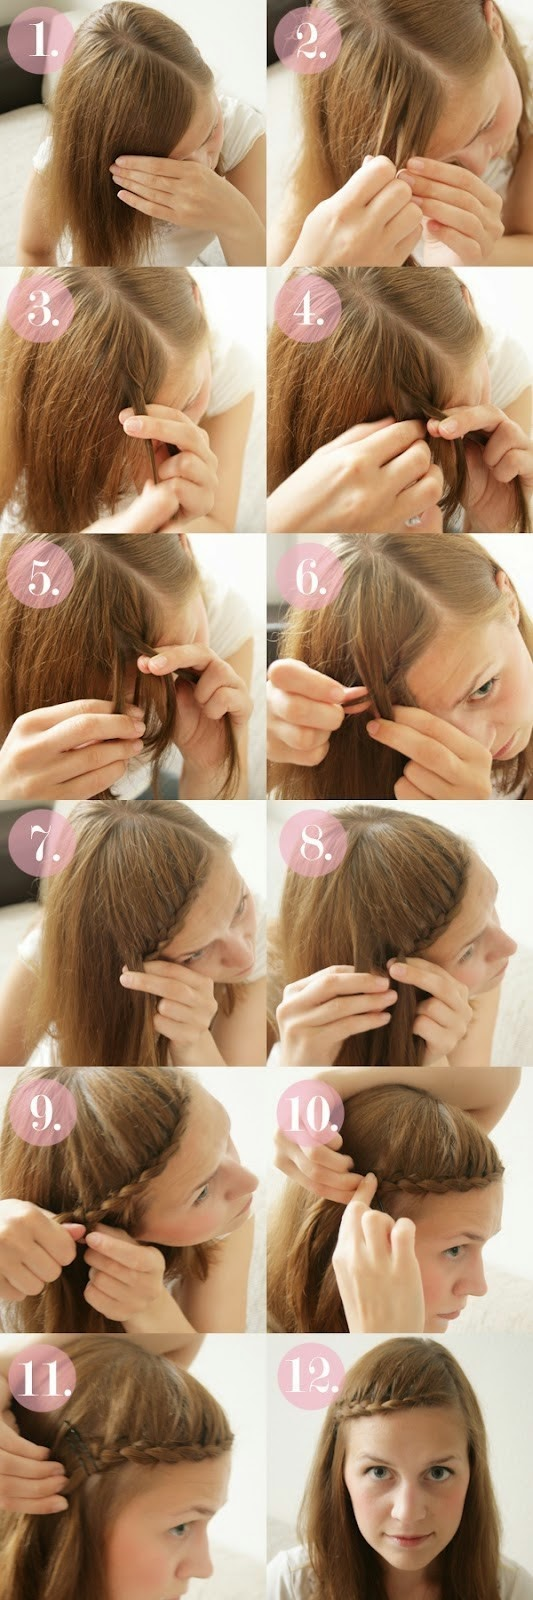 Braided Bangs Tutorial: Cute Braided Hairstyles